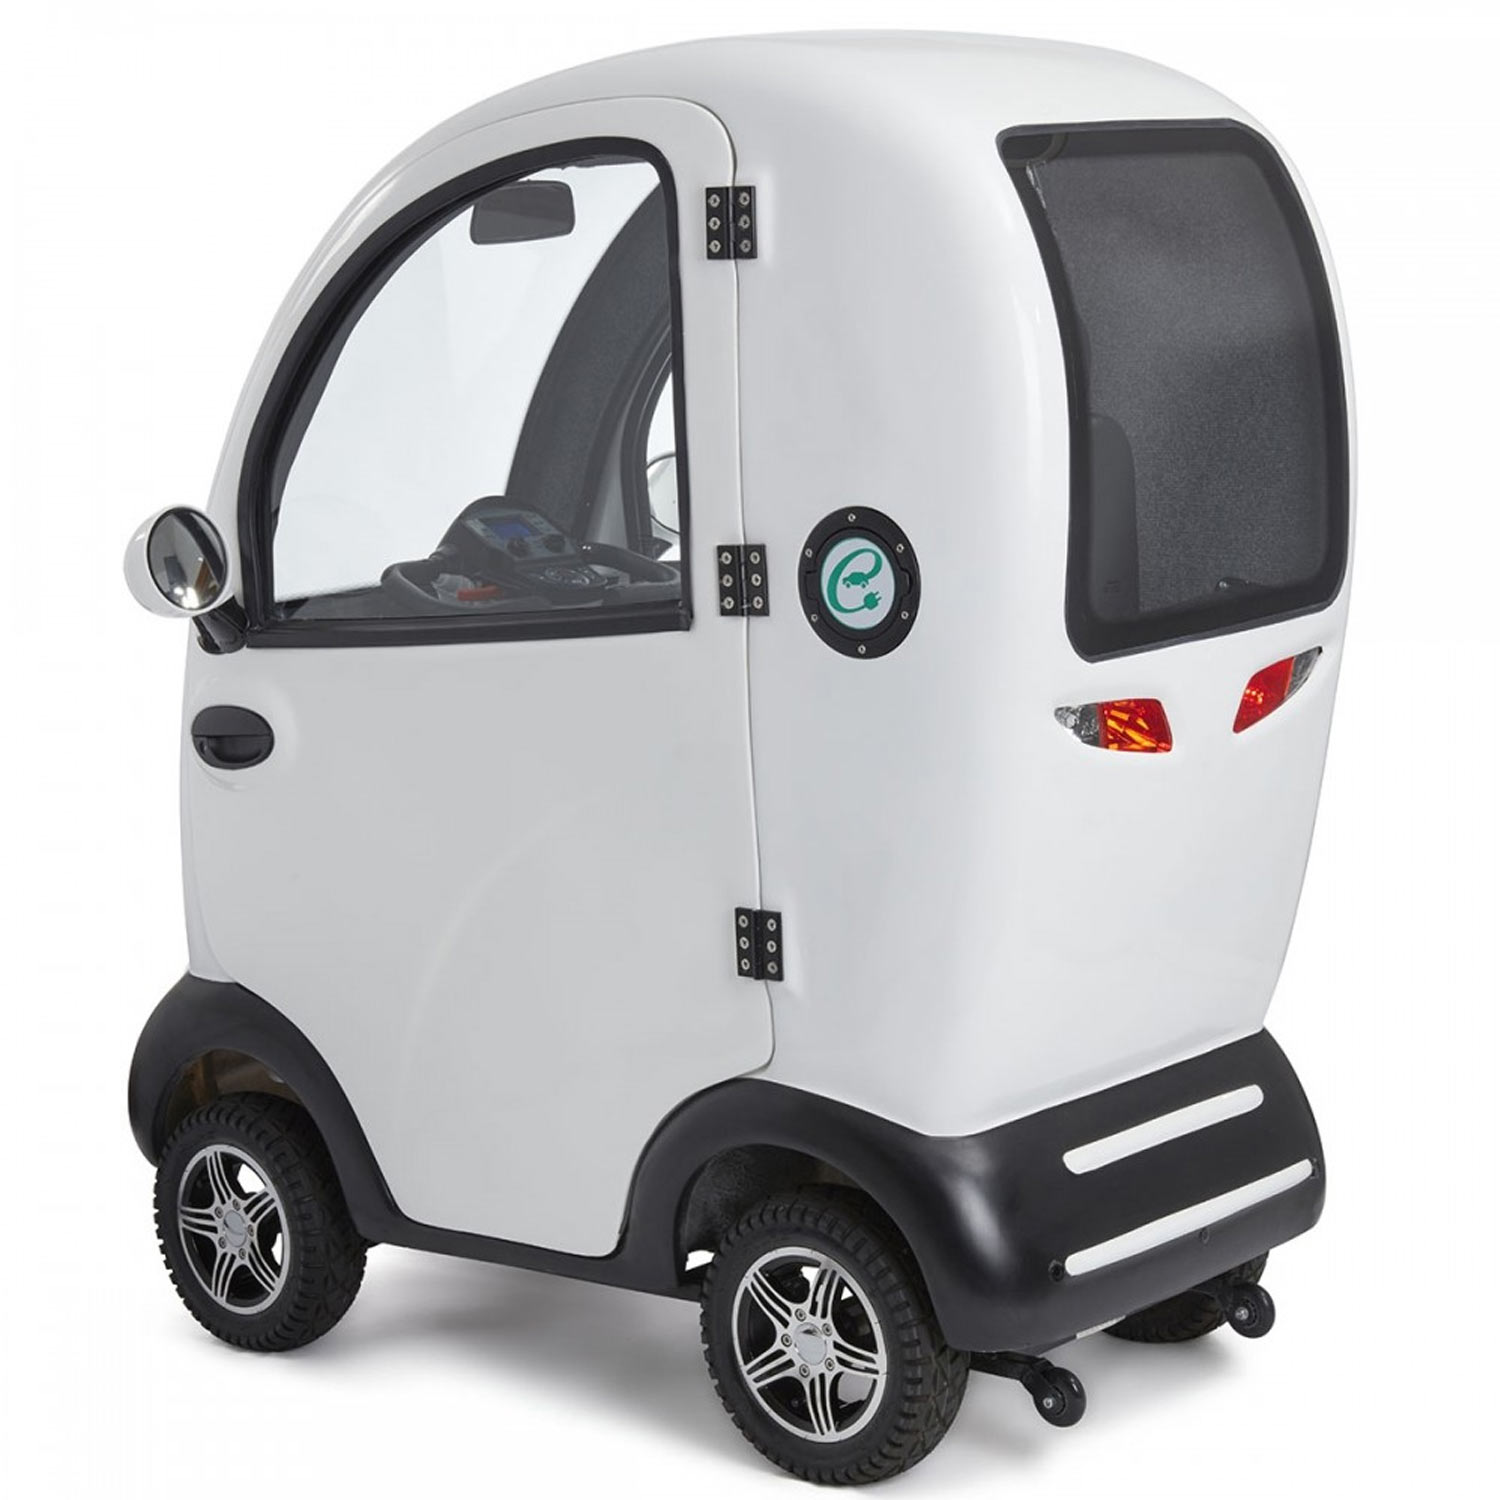 Shropshire Mobility Solutions - MK2 Cabin Car Suppliers - white cabin car for sale